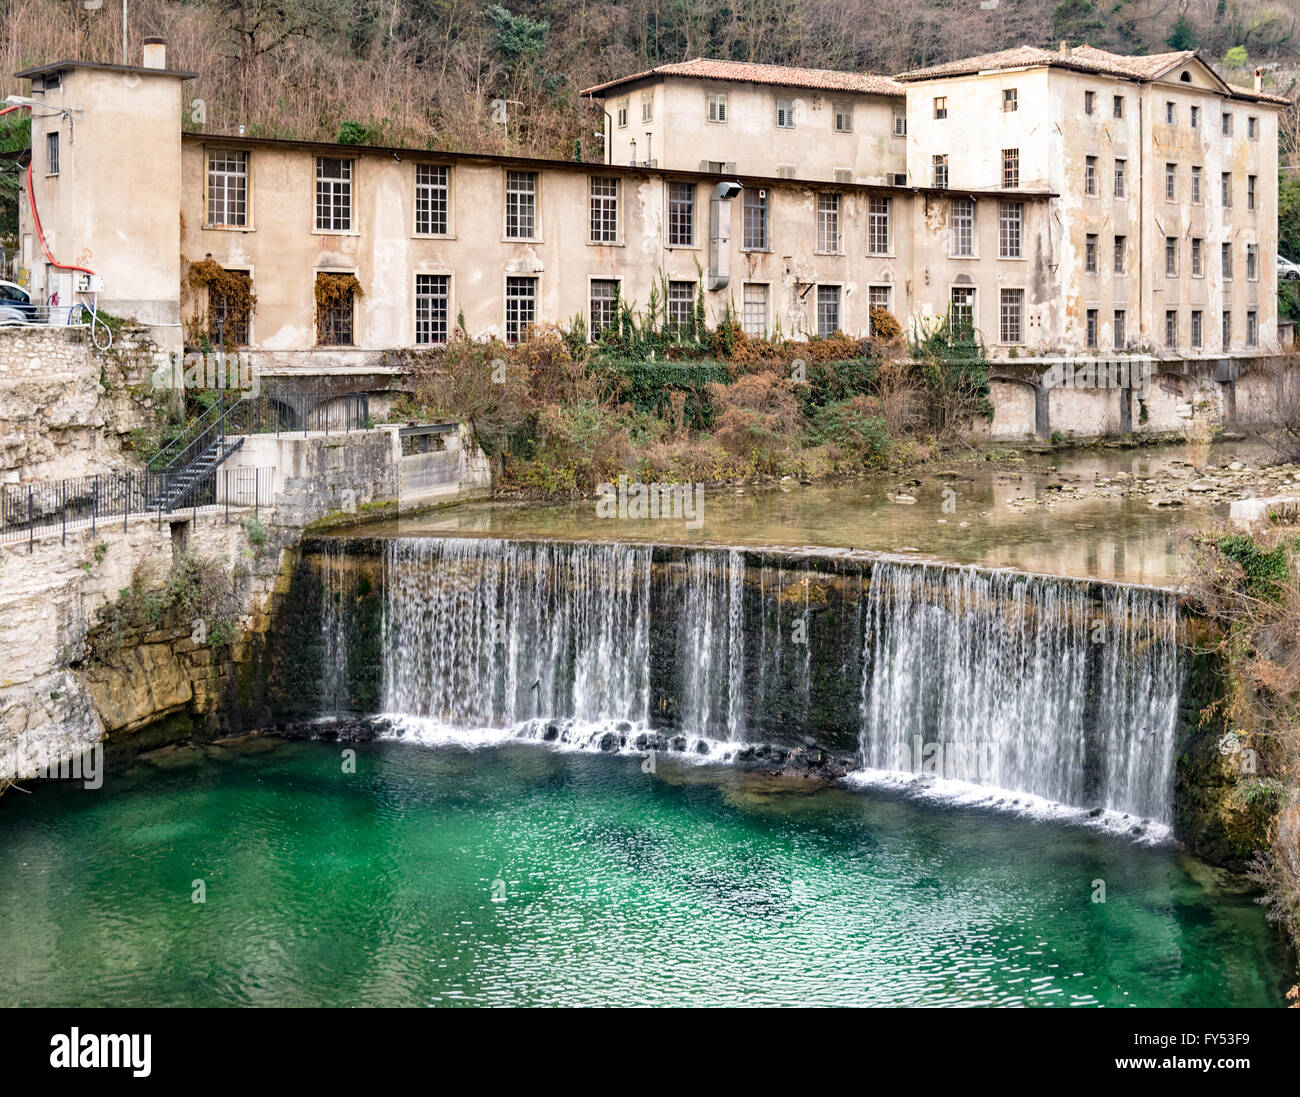 Old abandoned textile factory built on the river bank. - Stock Image